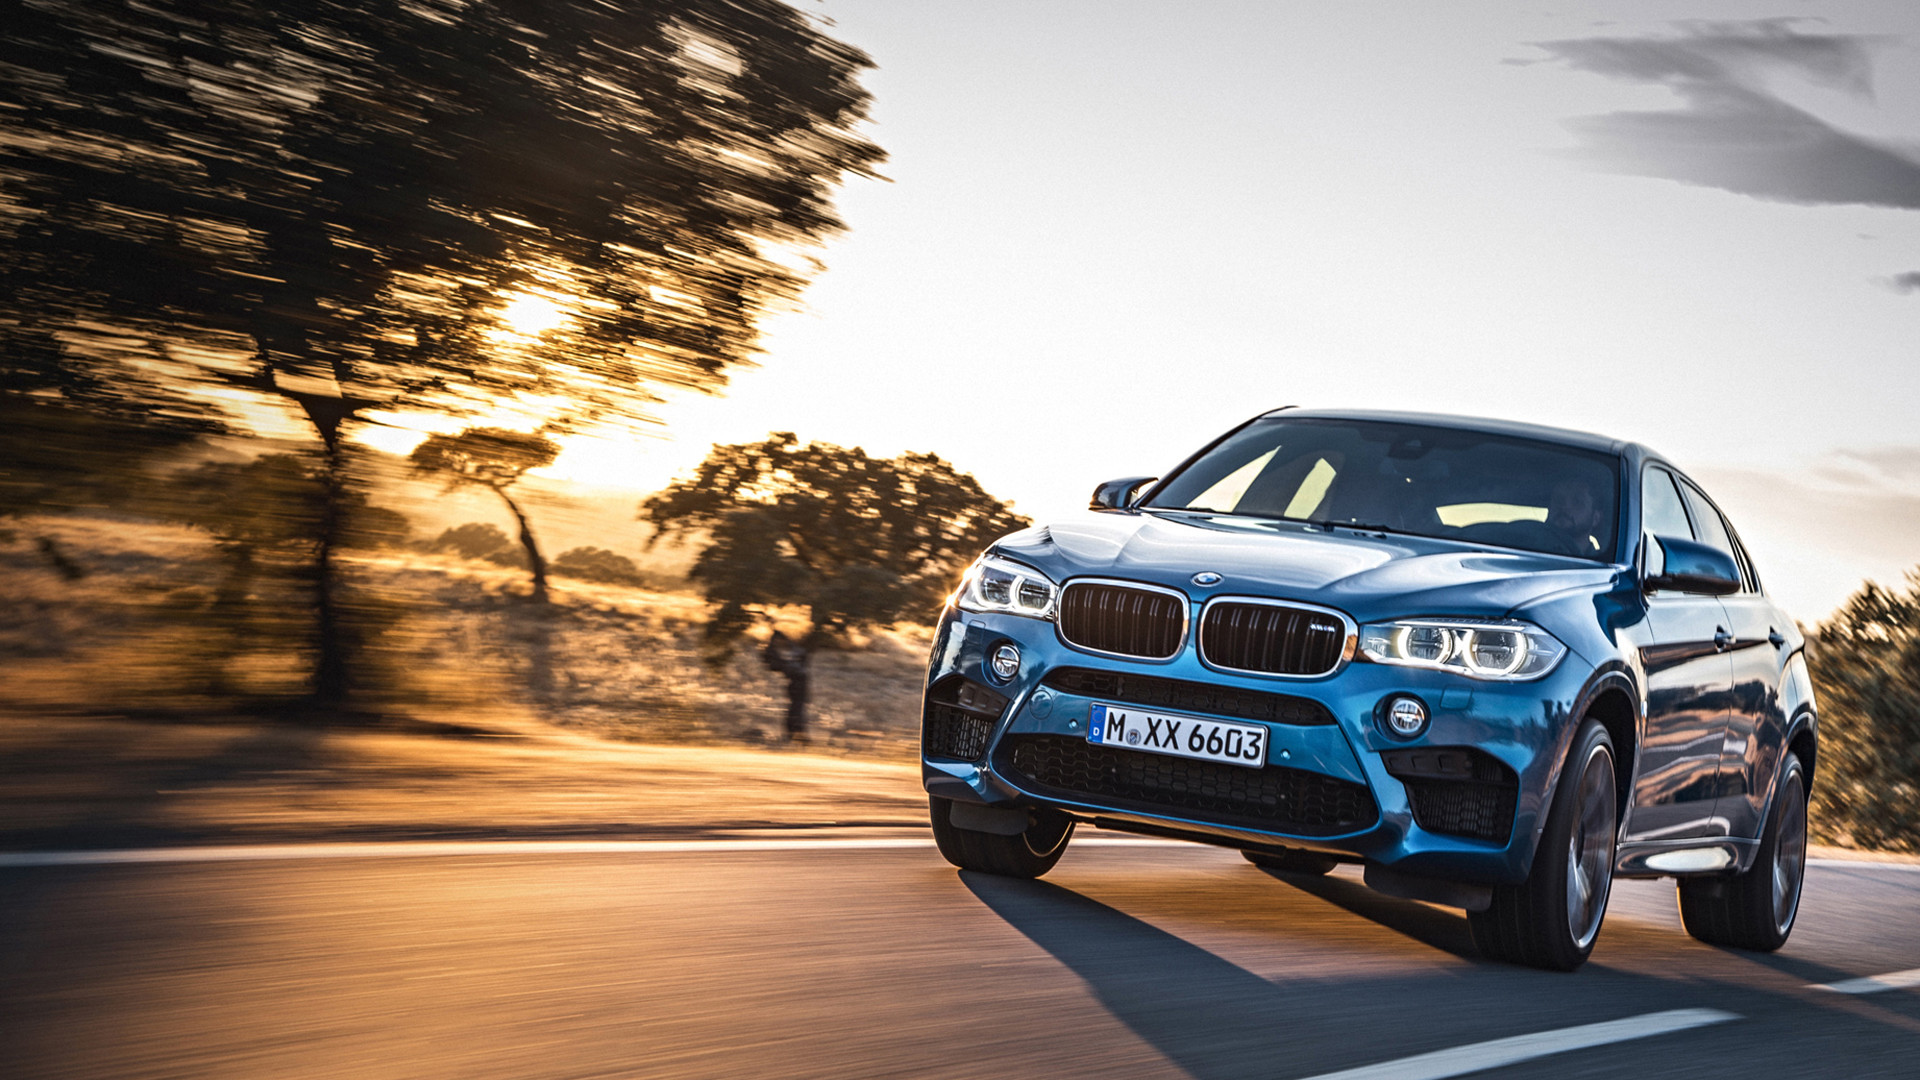 BMW X6 Wallpaper (69+ pictures)